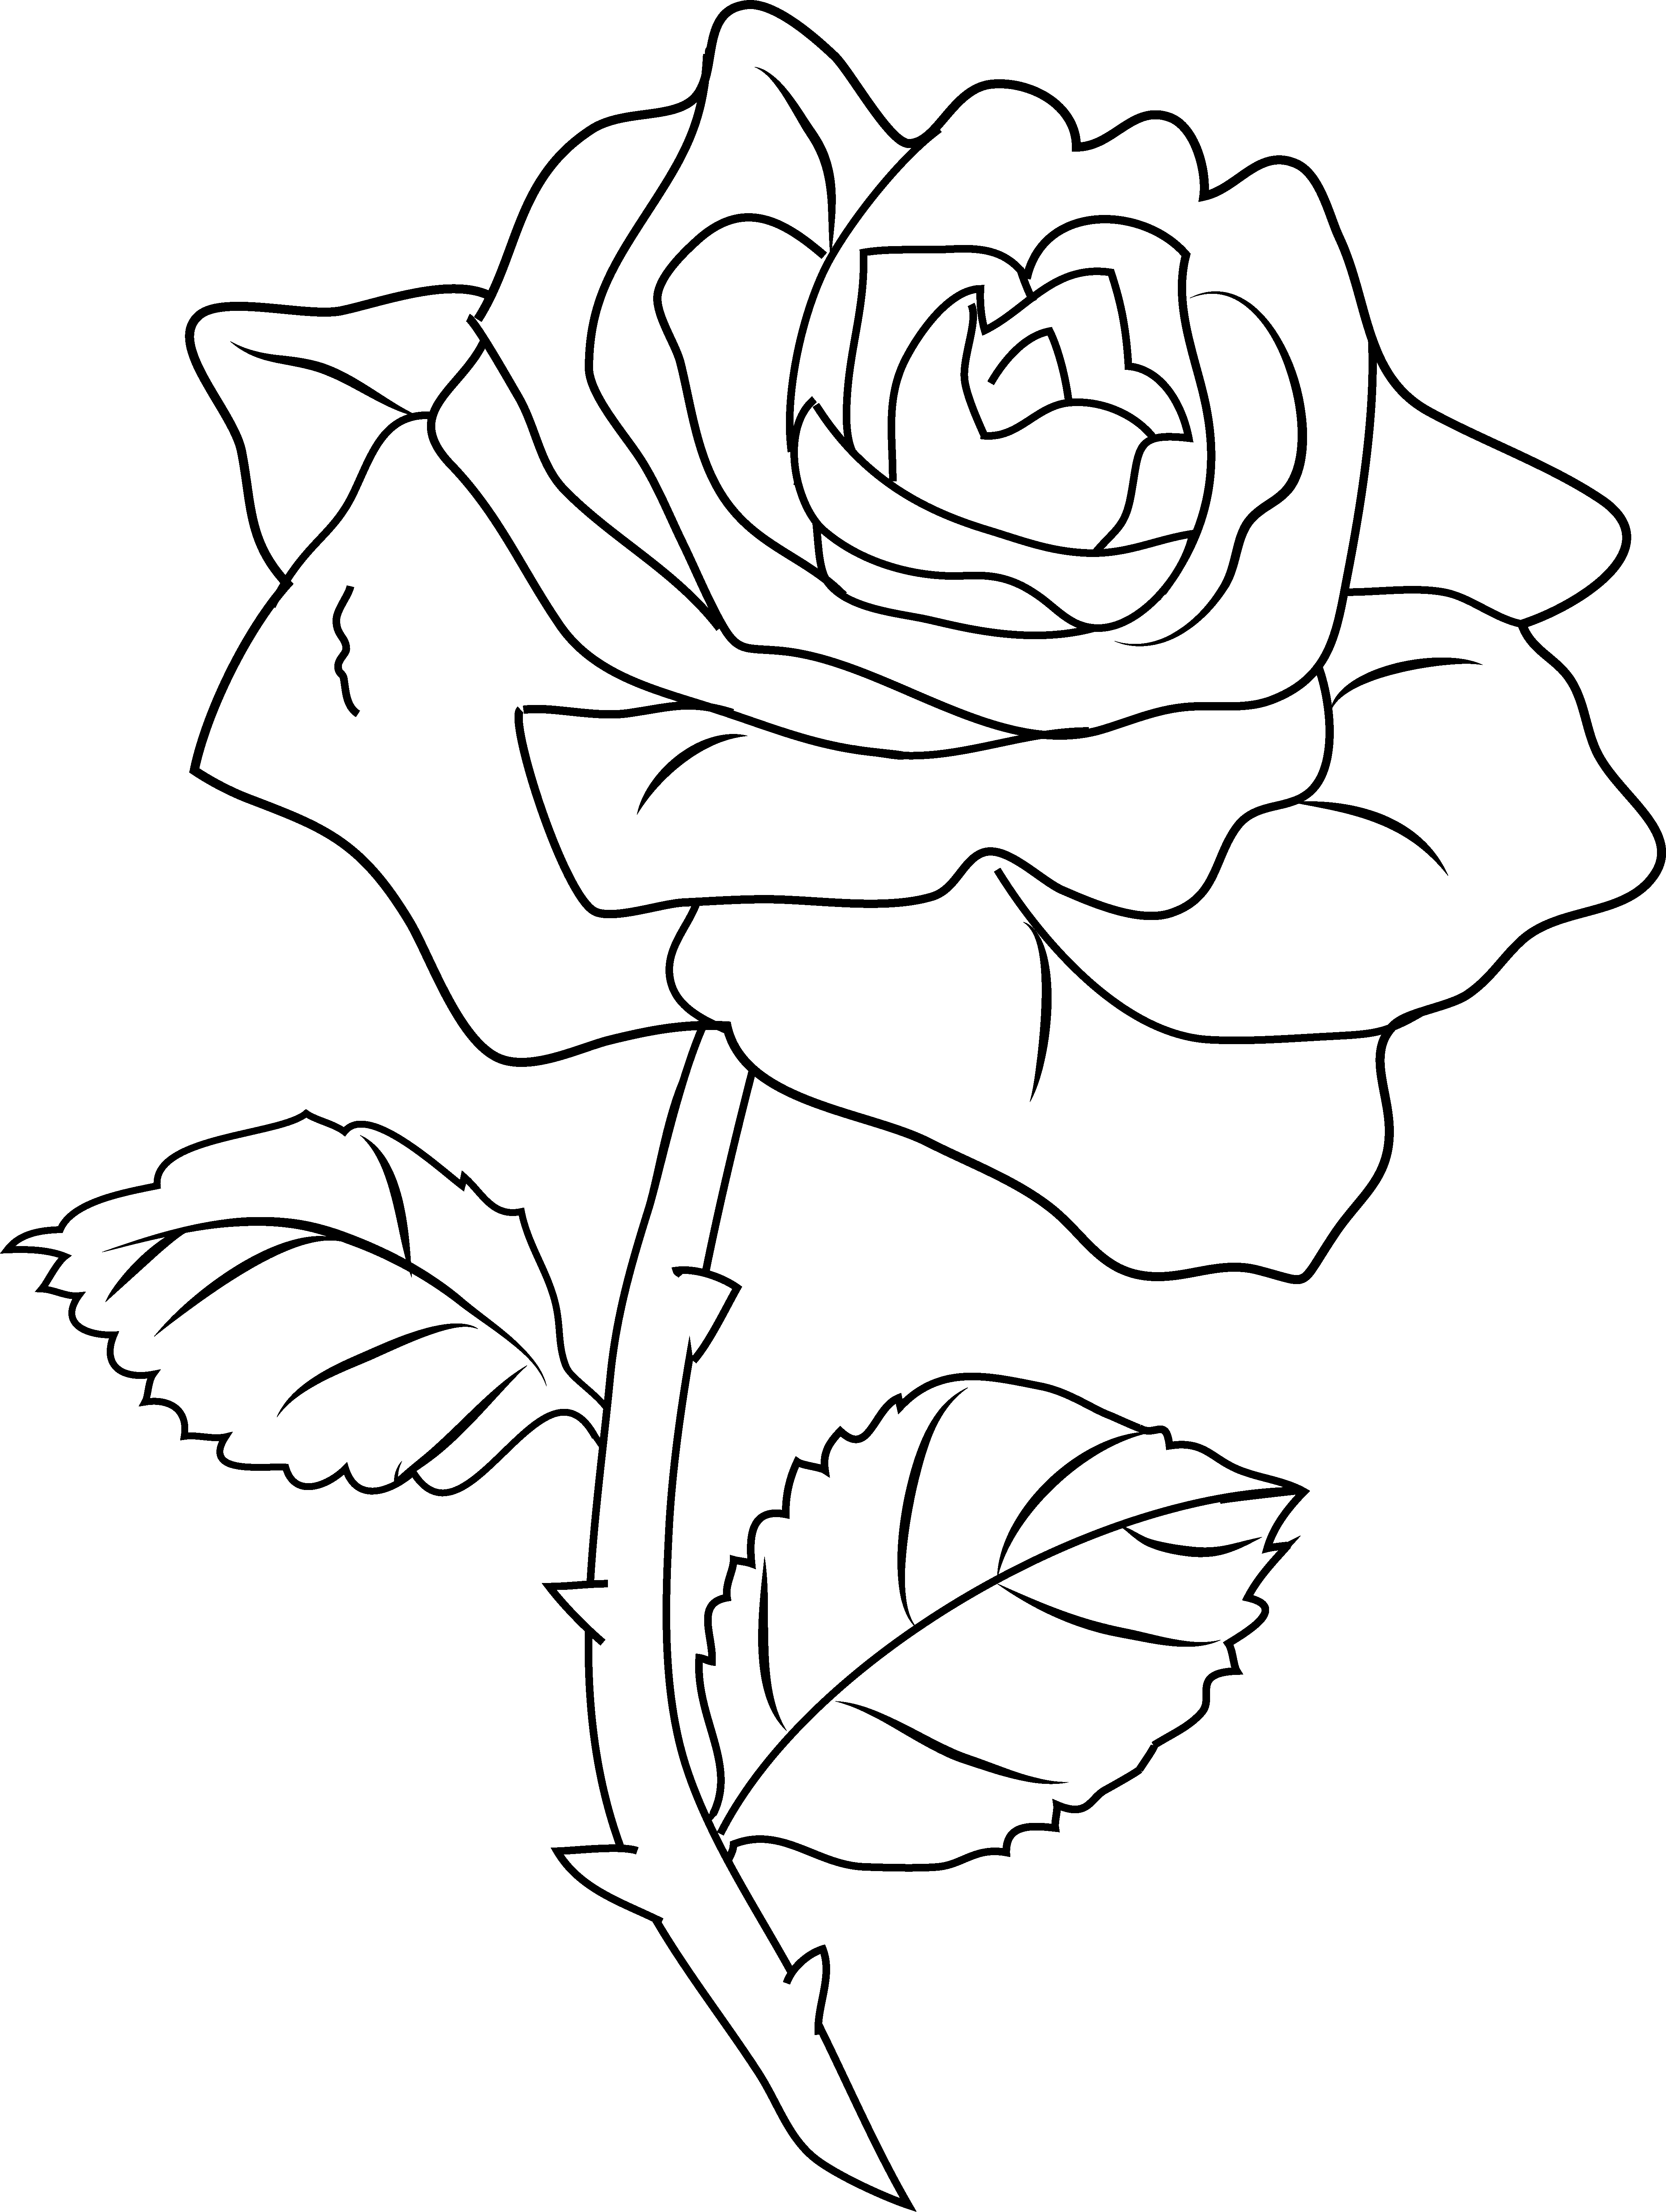 Free transparent new york rose coloring page clipart clip art transparent Free Line Drawing Rose, Download Free Clip Art, Free Clip Art on ... clip art transparent